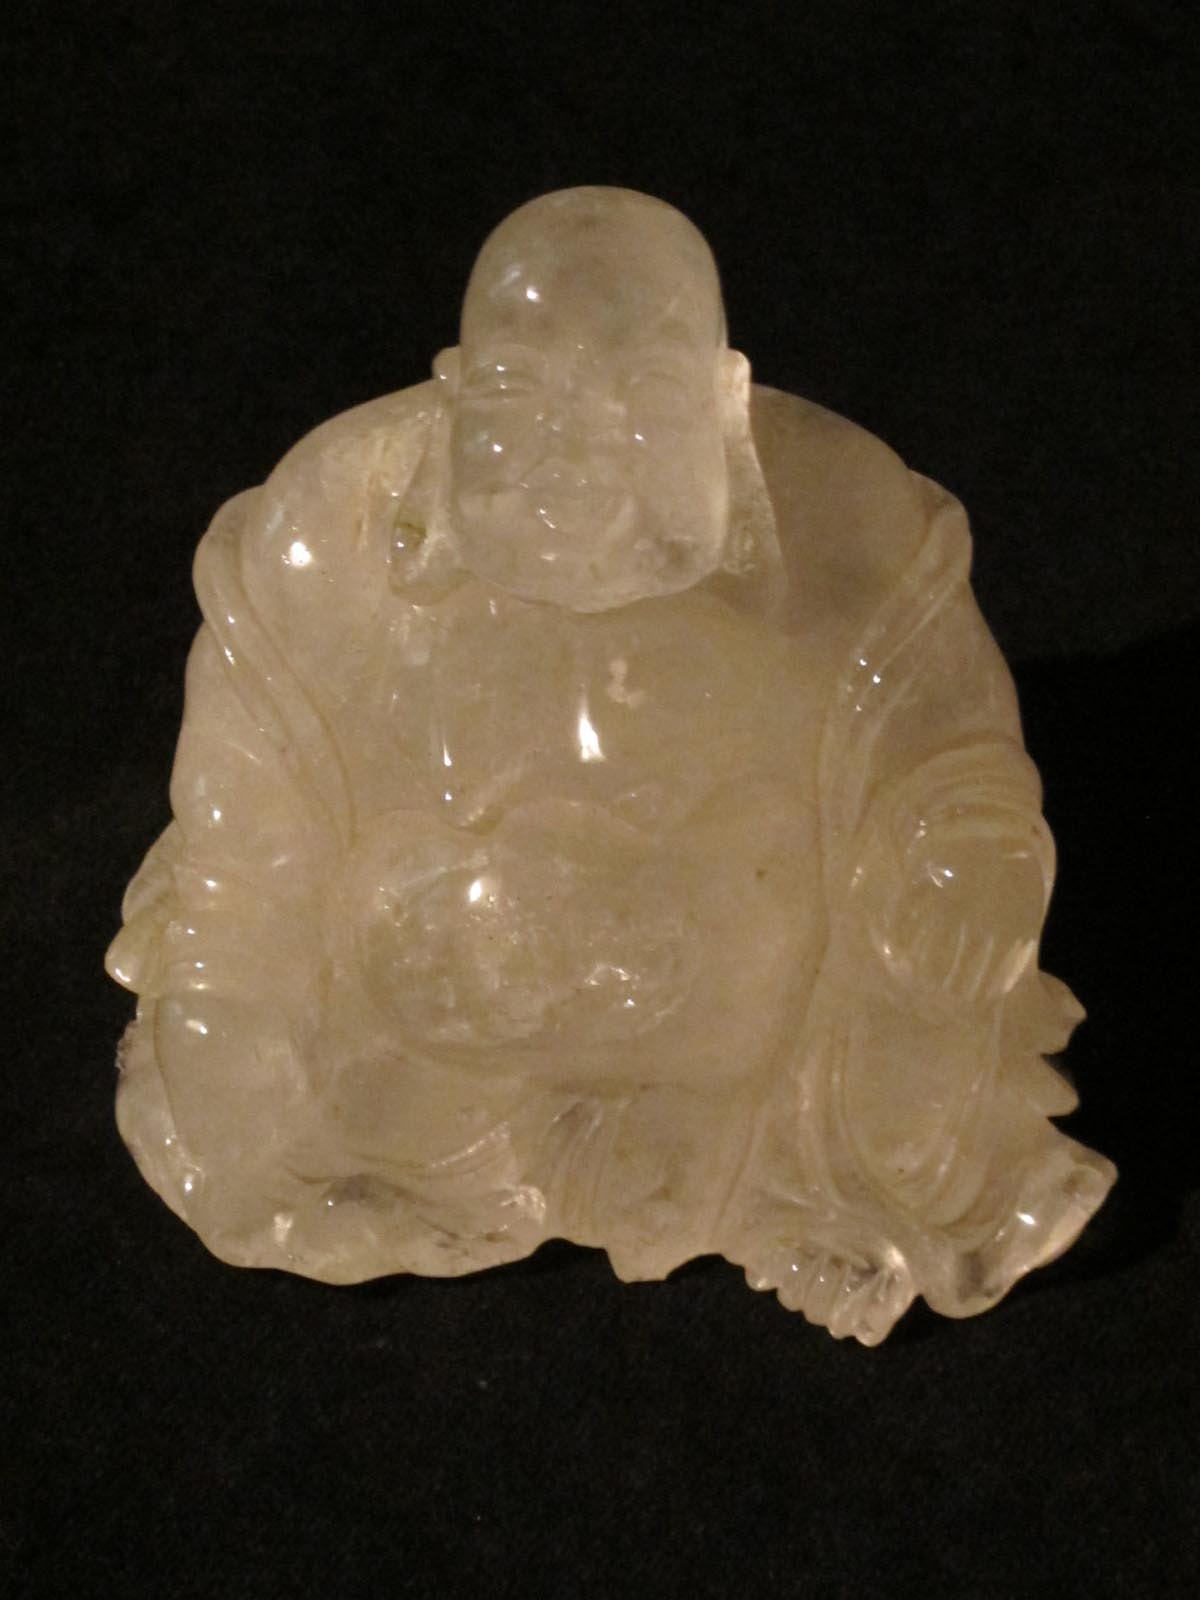 Rose Quartz Buddha Fossil and Crystal shop